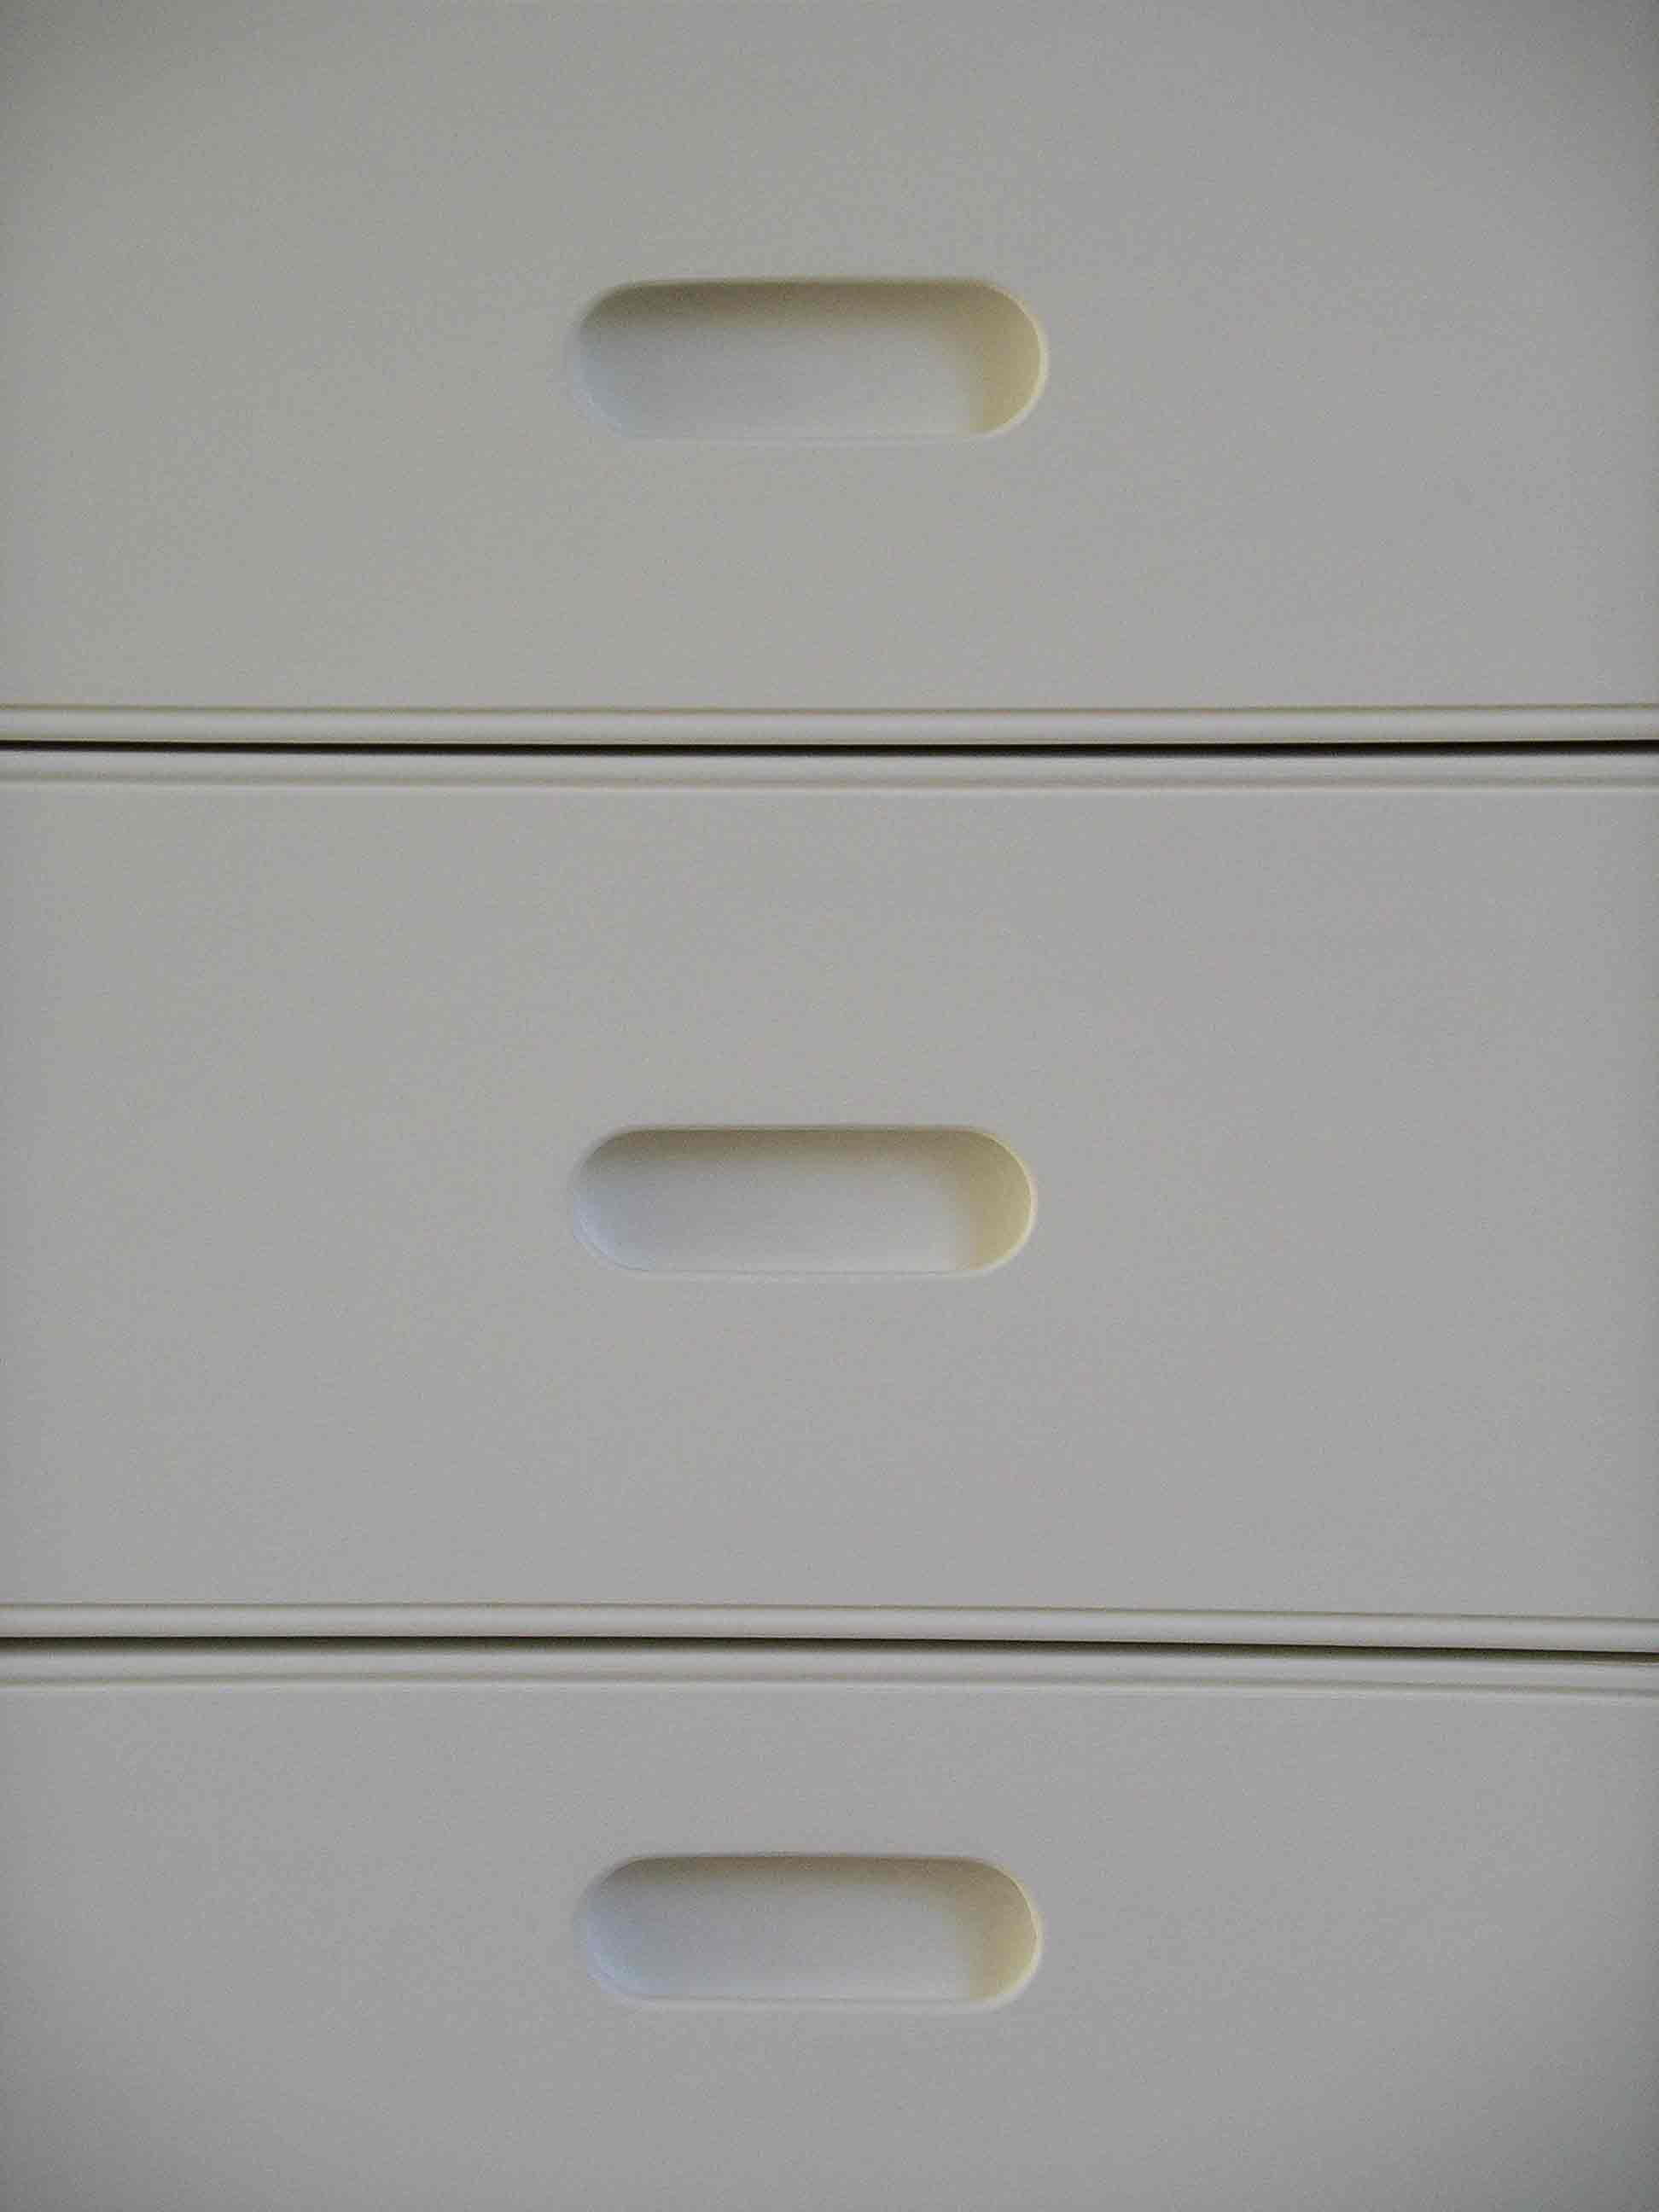 handmade kitchen drawers with integral inset handles